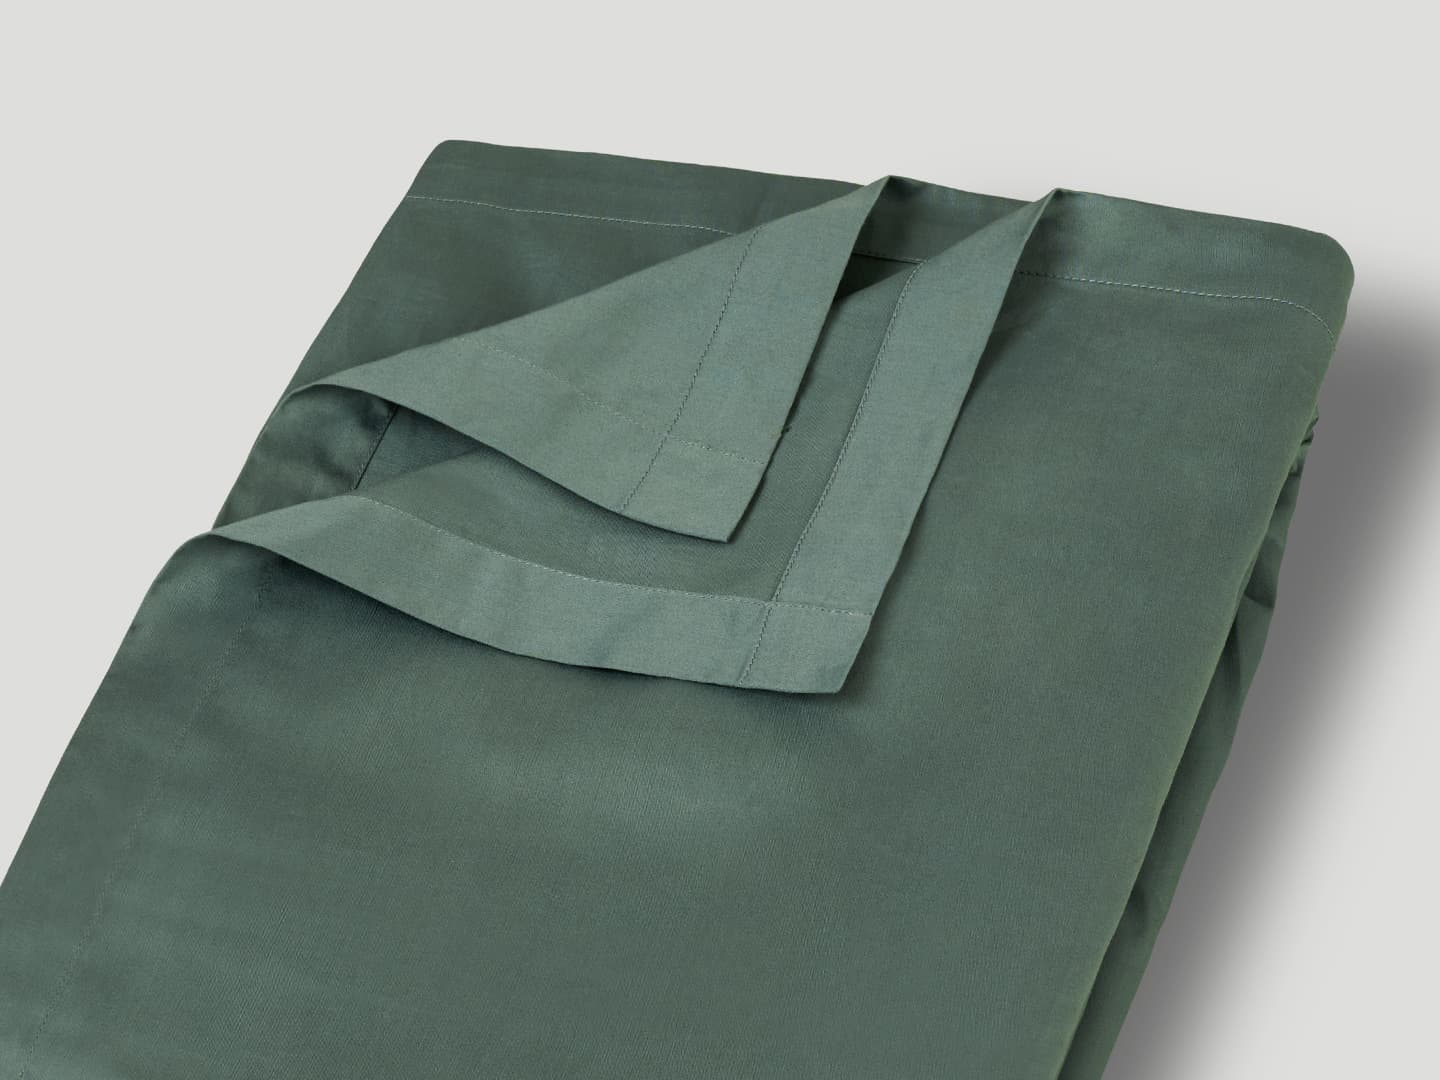 Underlakan Lind - Washed Bottle Green